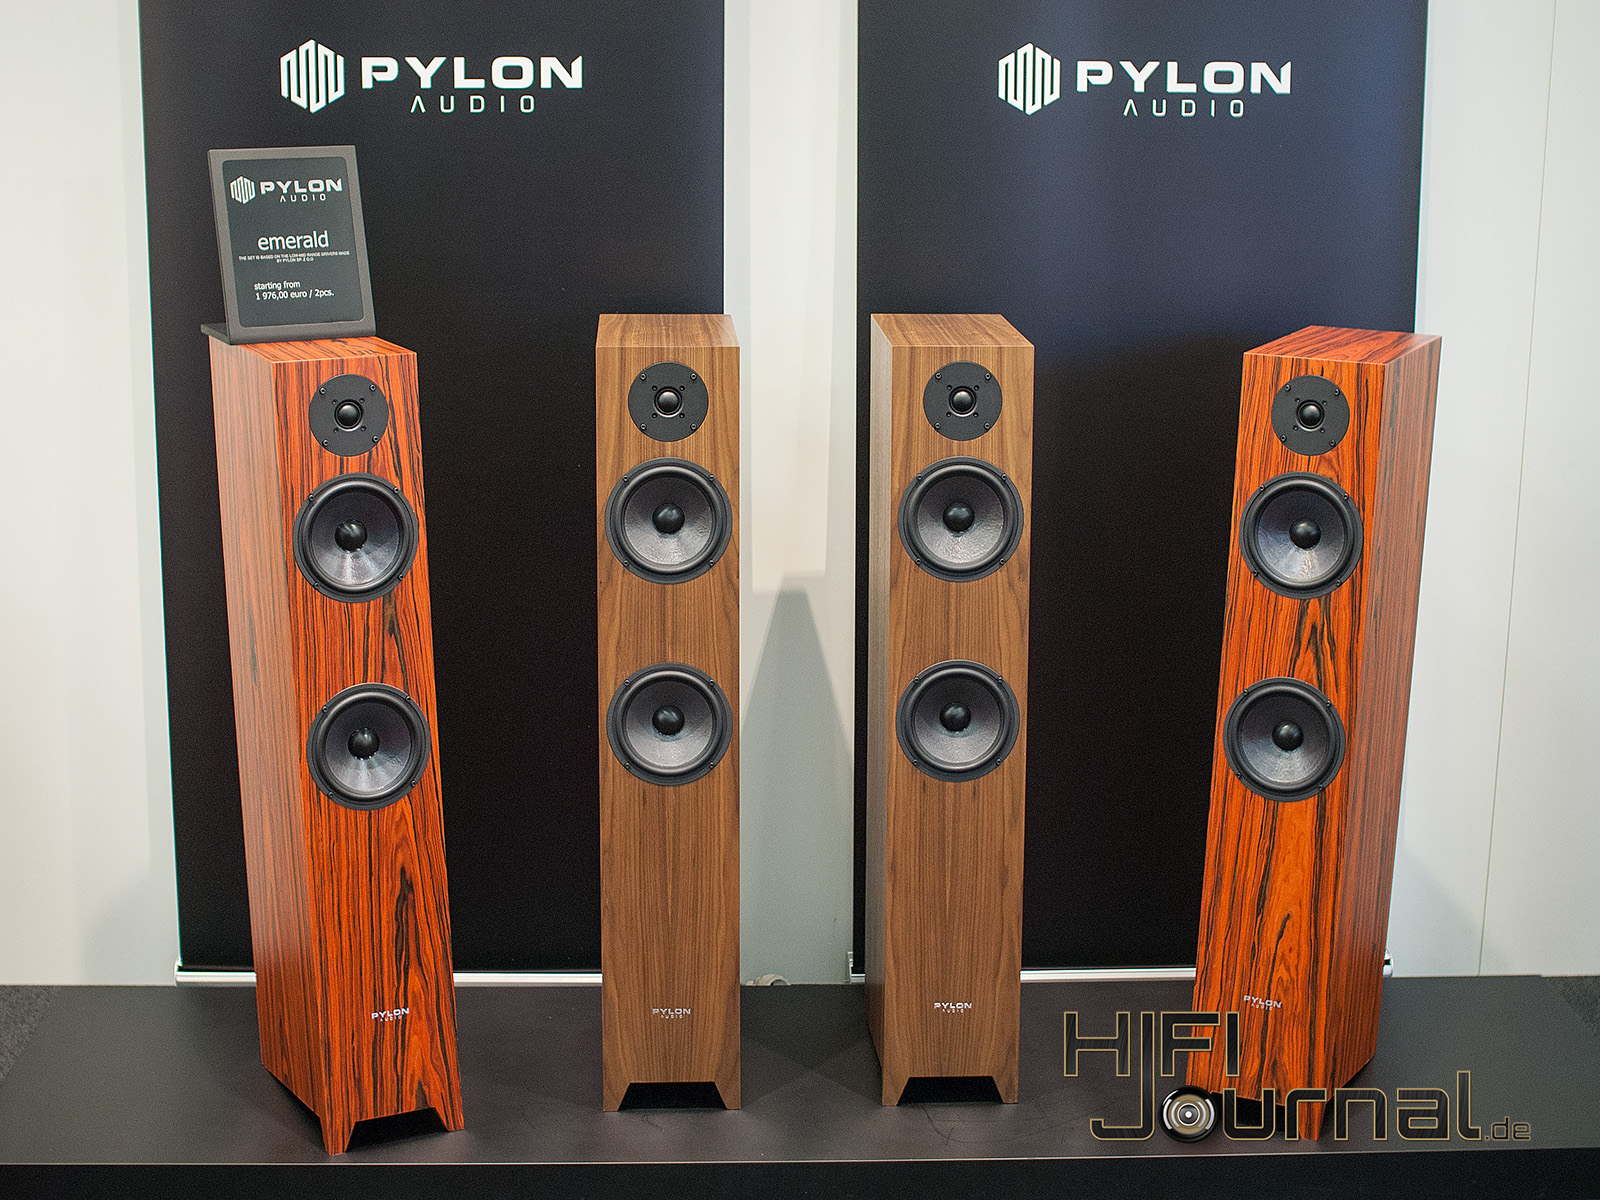 Pylon Audio emerald 1